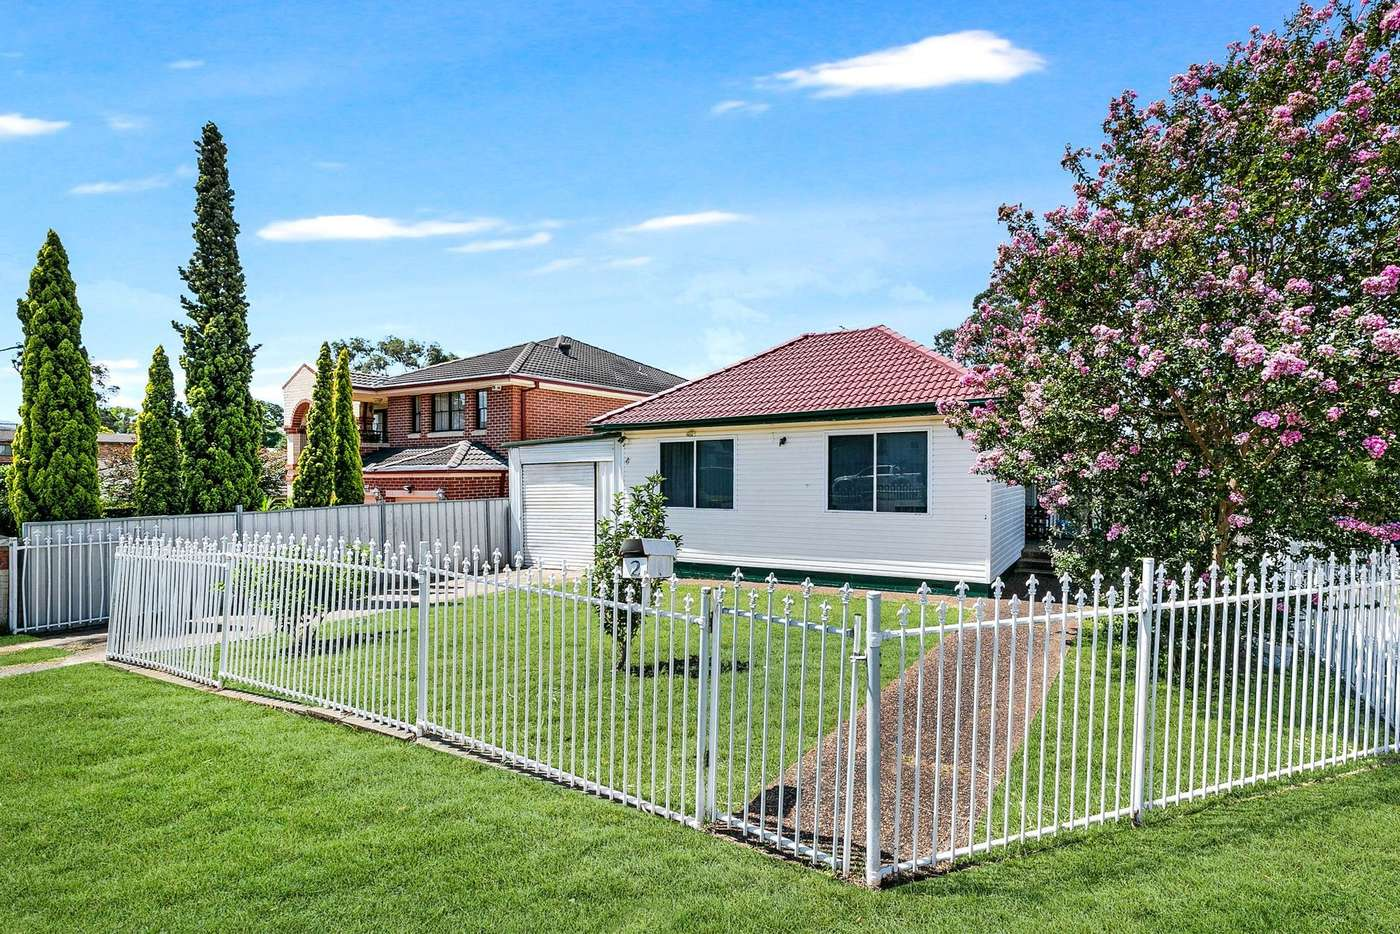 Main view of Homely house listing, 2 Barton Street, Smithfield NSW 2164